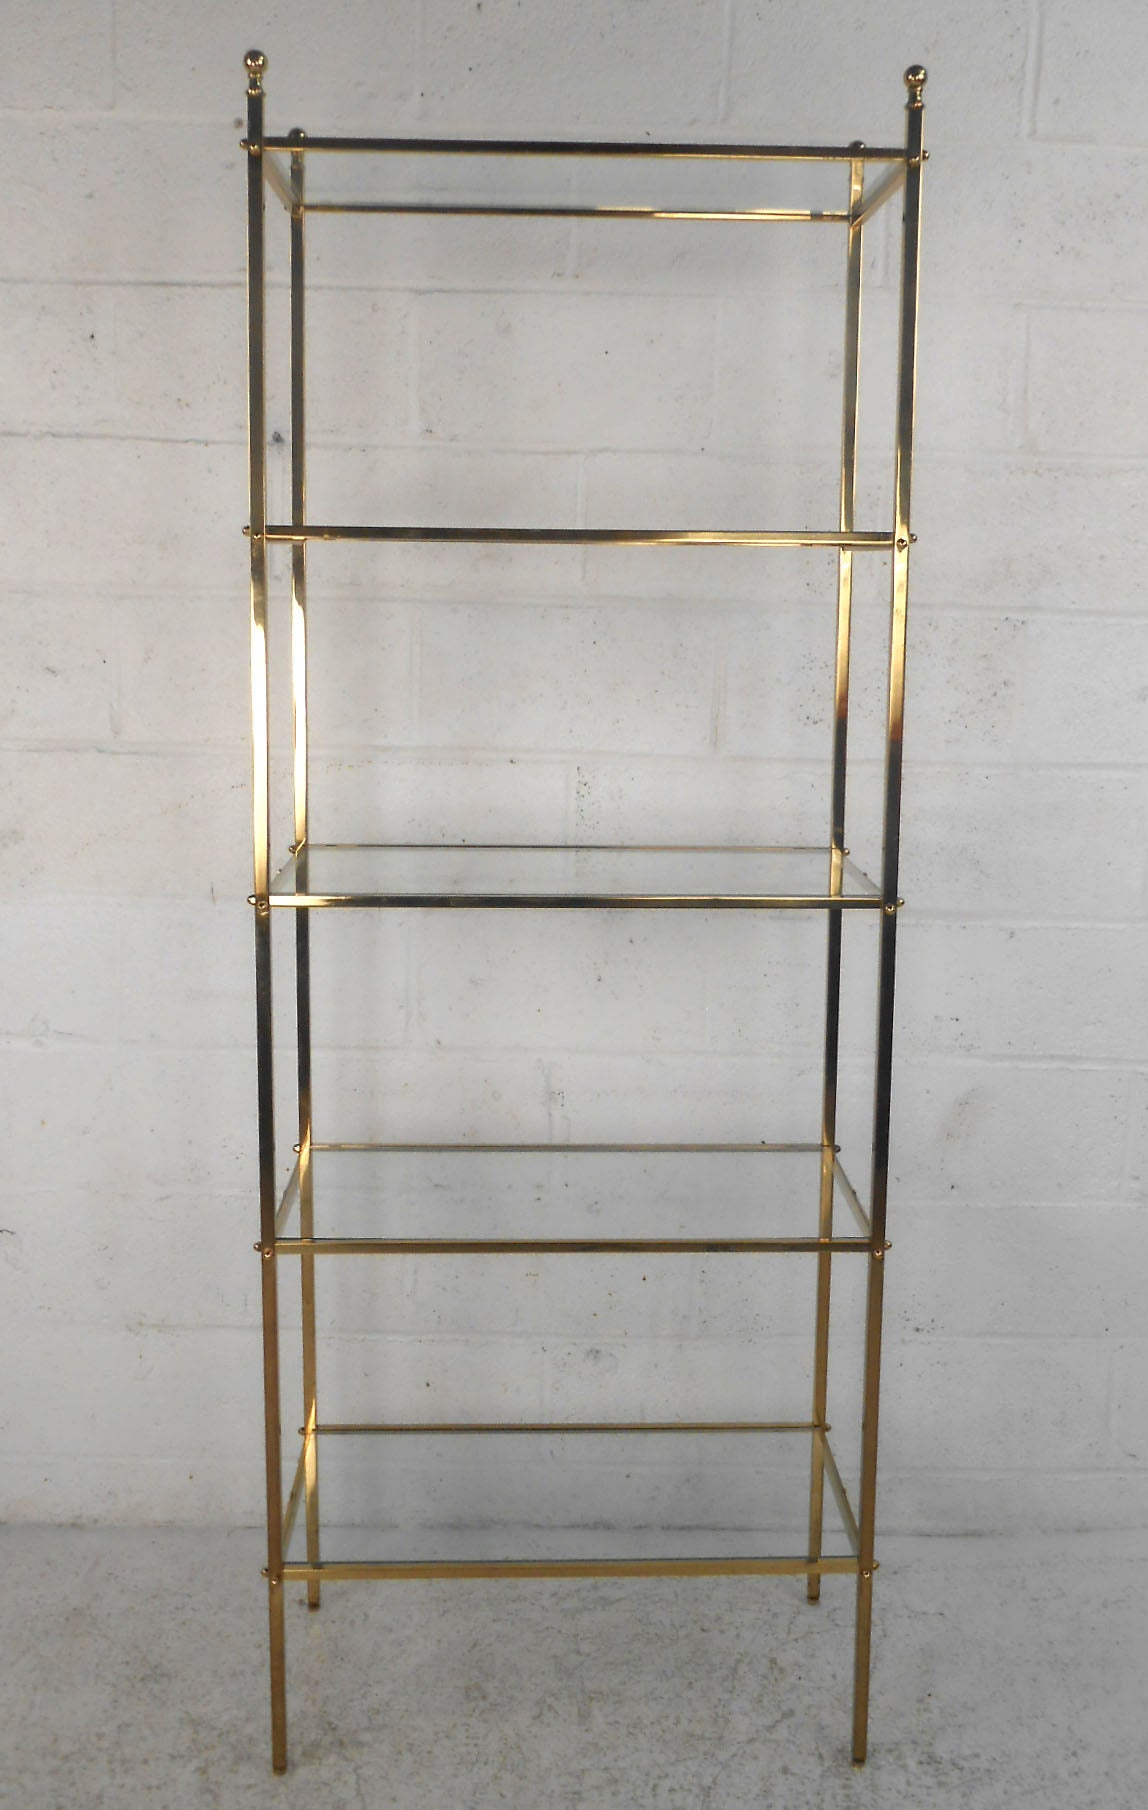 mid century modern brass etagere glass shelf display at 1stdibs. Black Bedroom Furniture Sets. Home Design Ideas